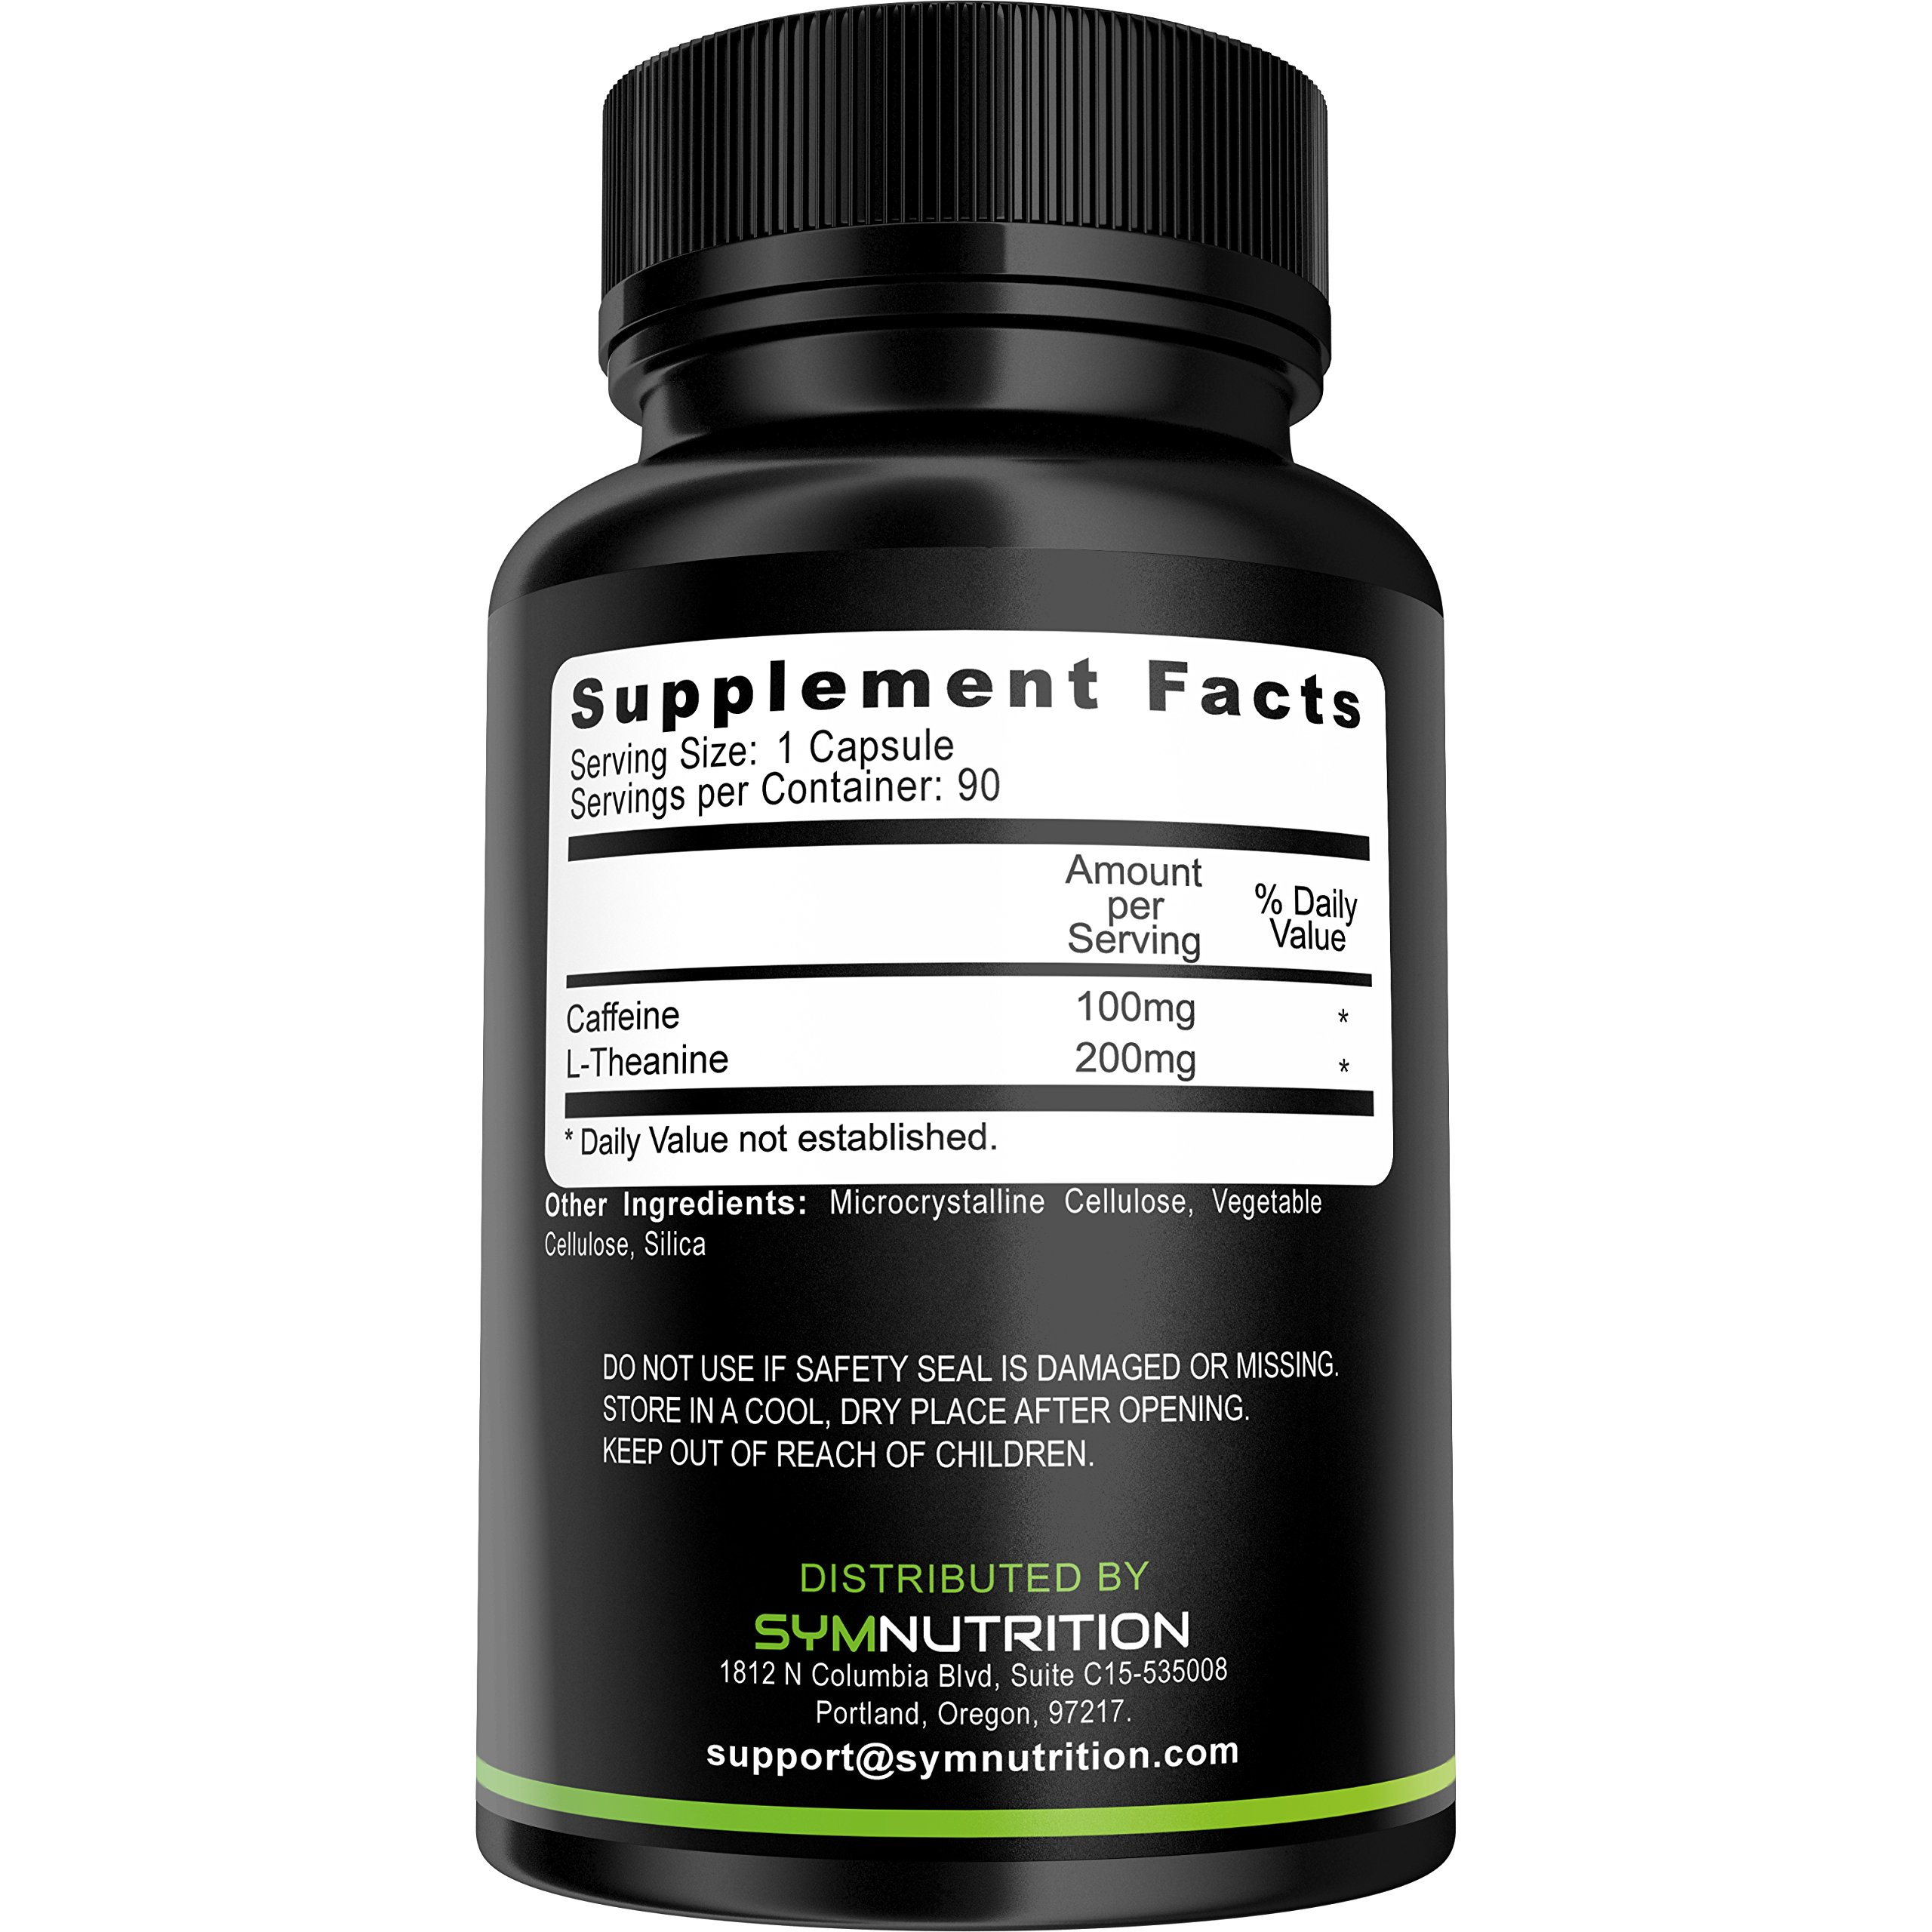 Caffeine 100mg, L-Theanine 200mg - 90 Count (V-Capsules); Taken for Better Focus, Energy, Mood & Wakefulness | Nootropic Stack | Non-GMO & Gluten Free by SYM Nutrition (Image #2)